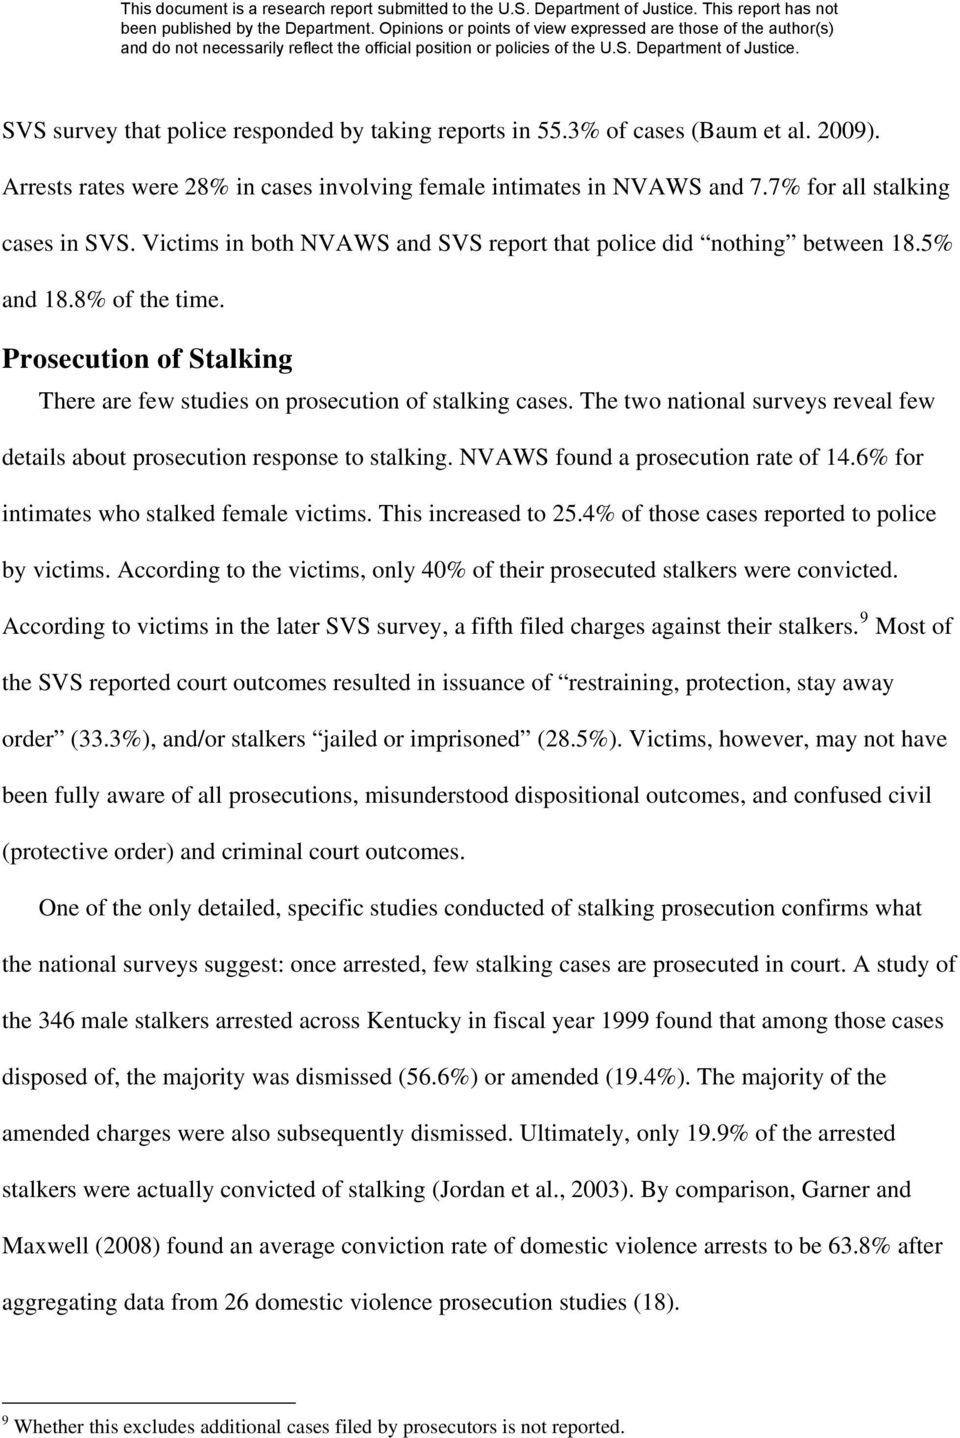 The two national surveys reveal few details about prosecution response to stalking. NVAWS found a prosecution rate of 14.6% for intimates who stalked female victims. This increased to 25.